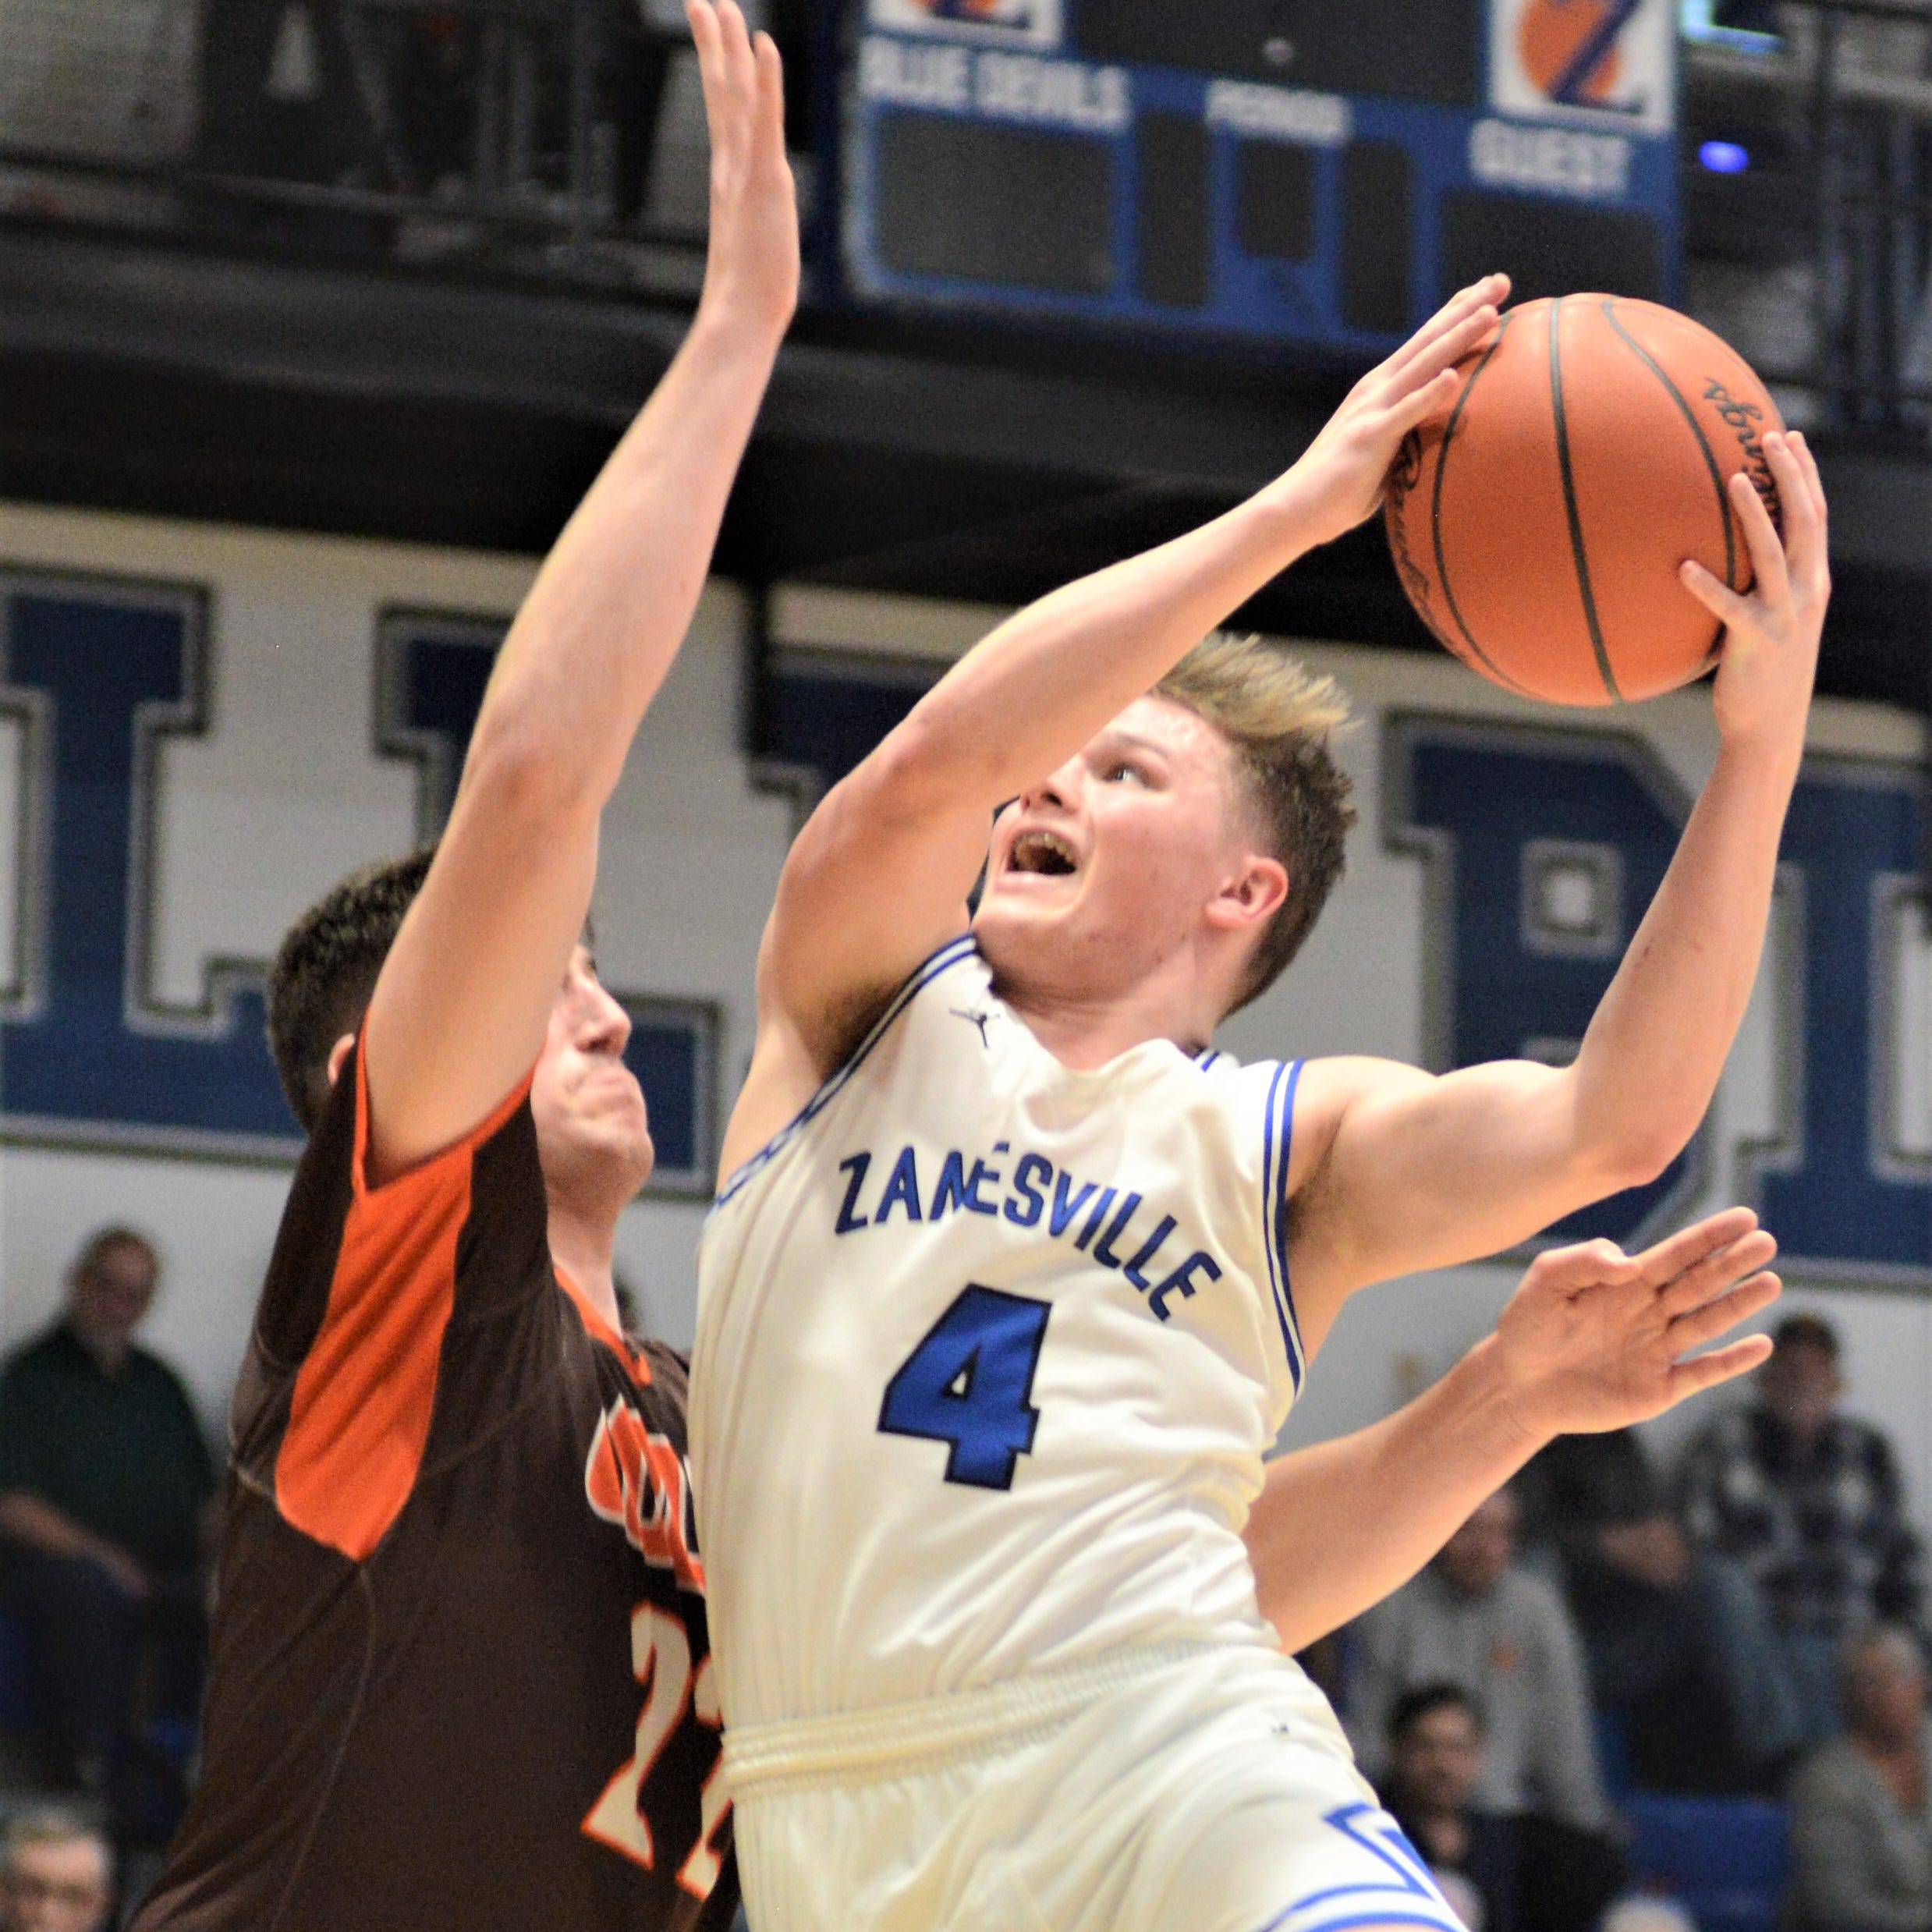 Regular season ends in misery for Zanesville